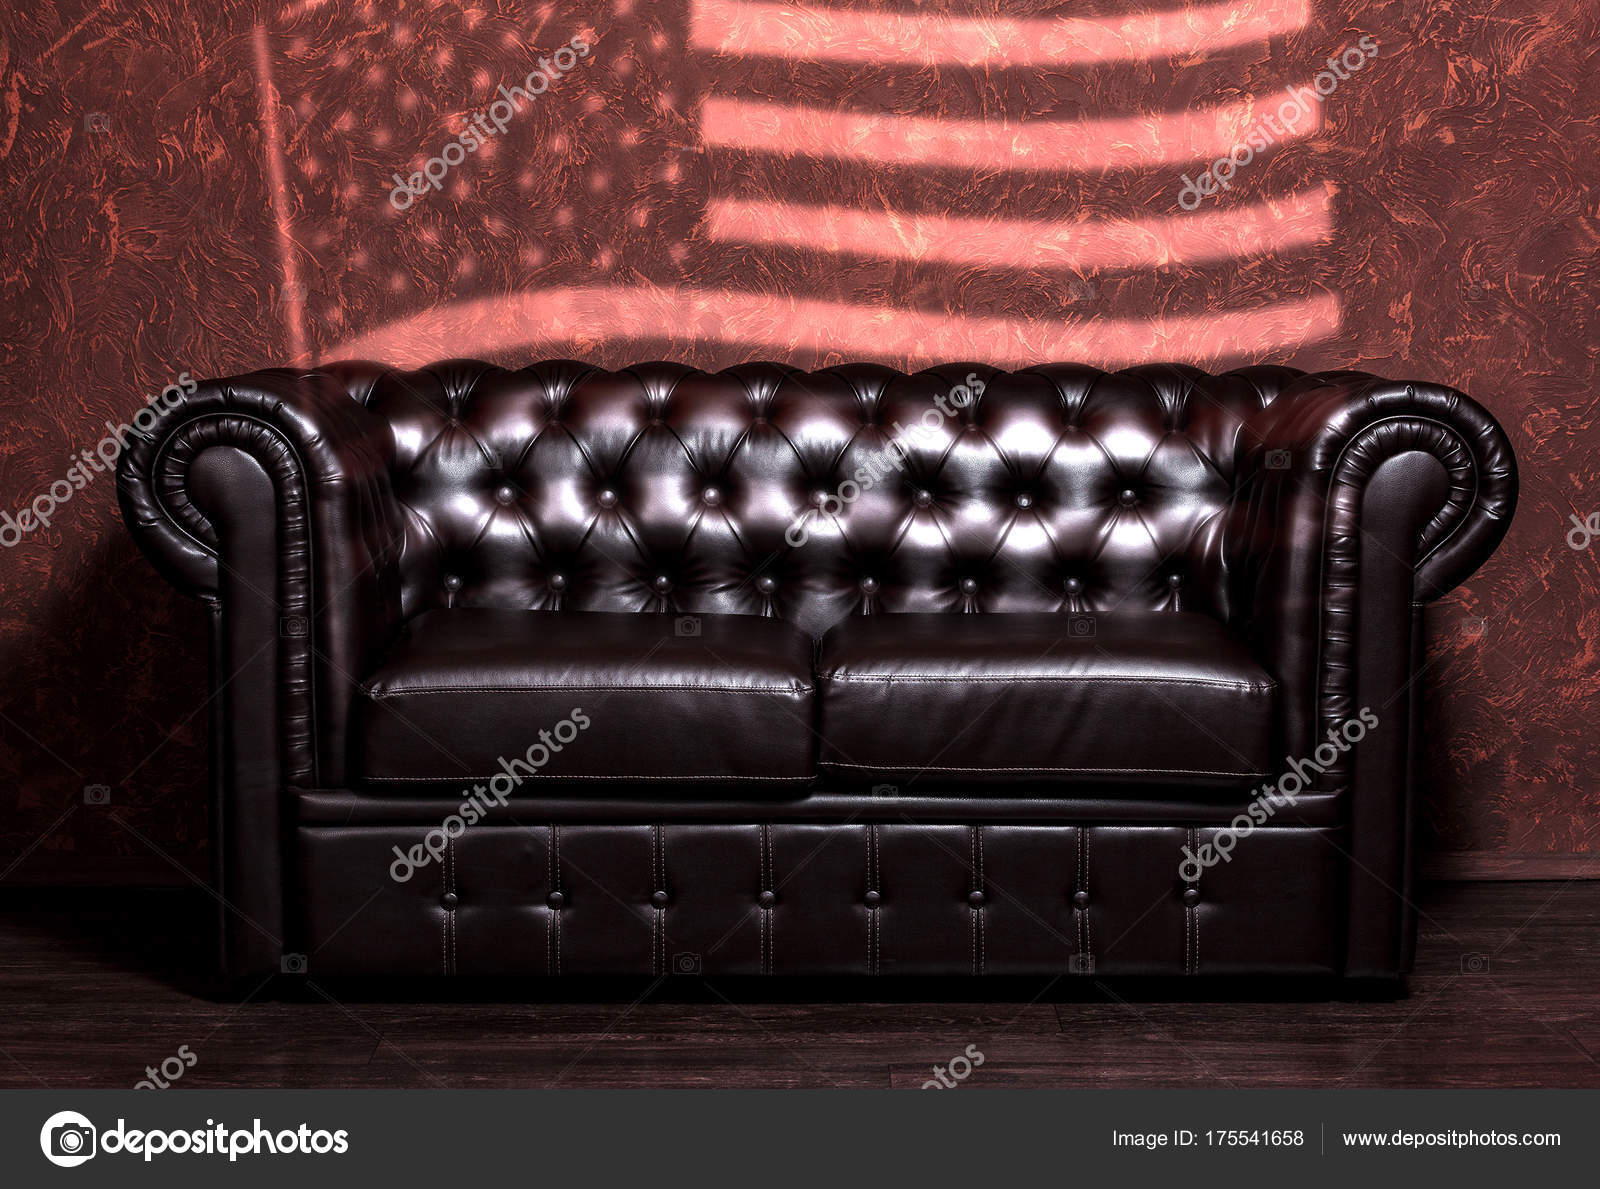 dark brown leather couches set vintage old dark brown leather sofa with grunge wall the usa flag in